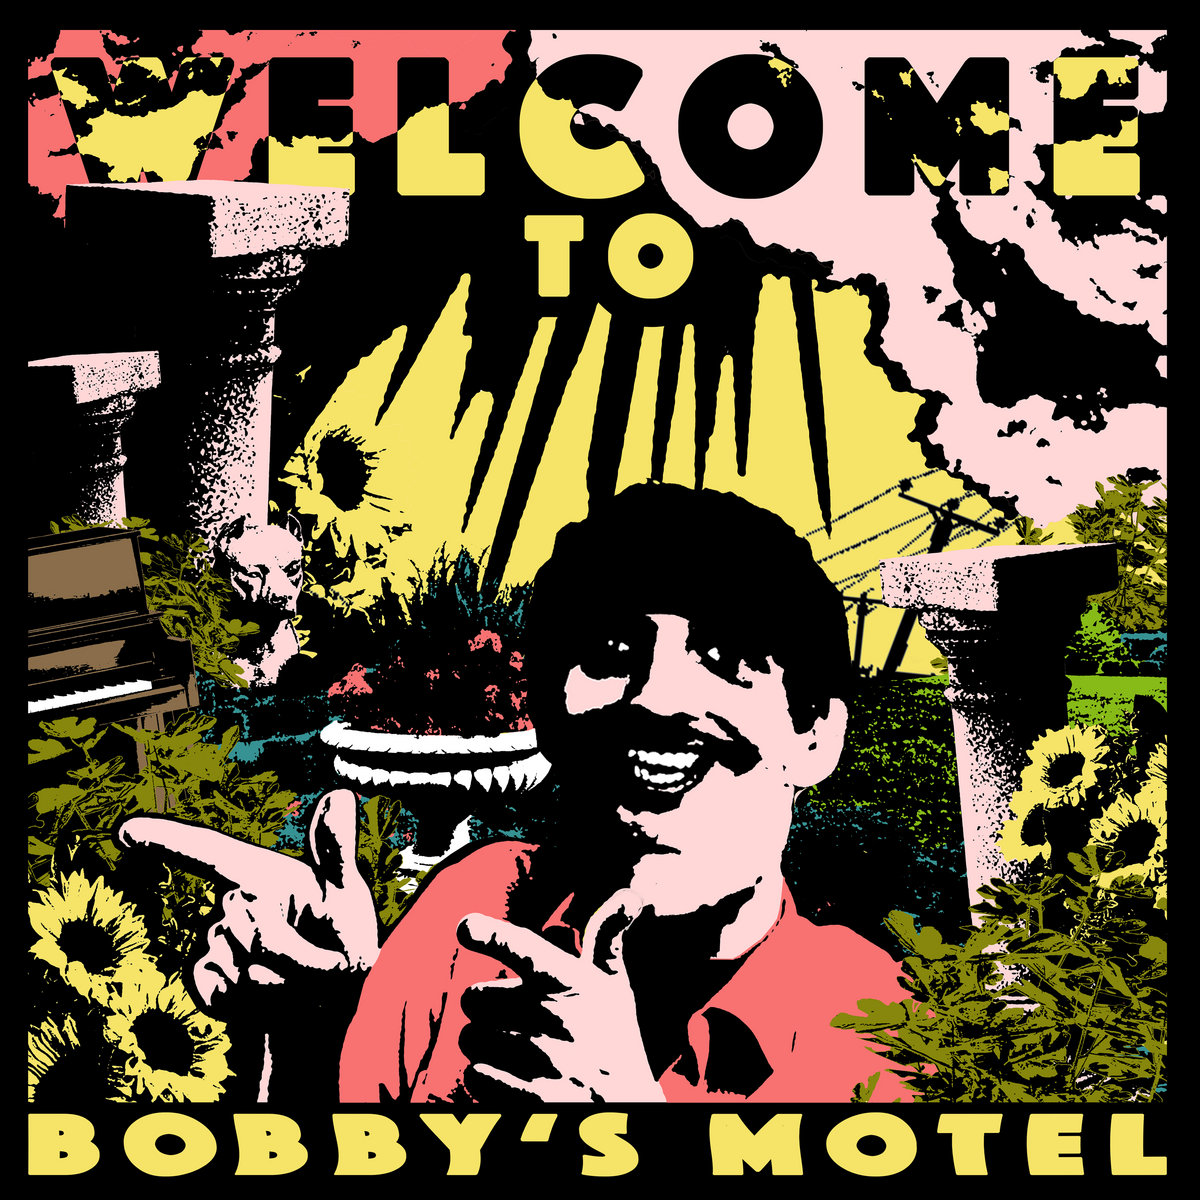 Welcome to Bobby's Motel | Pottery